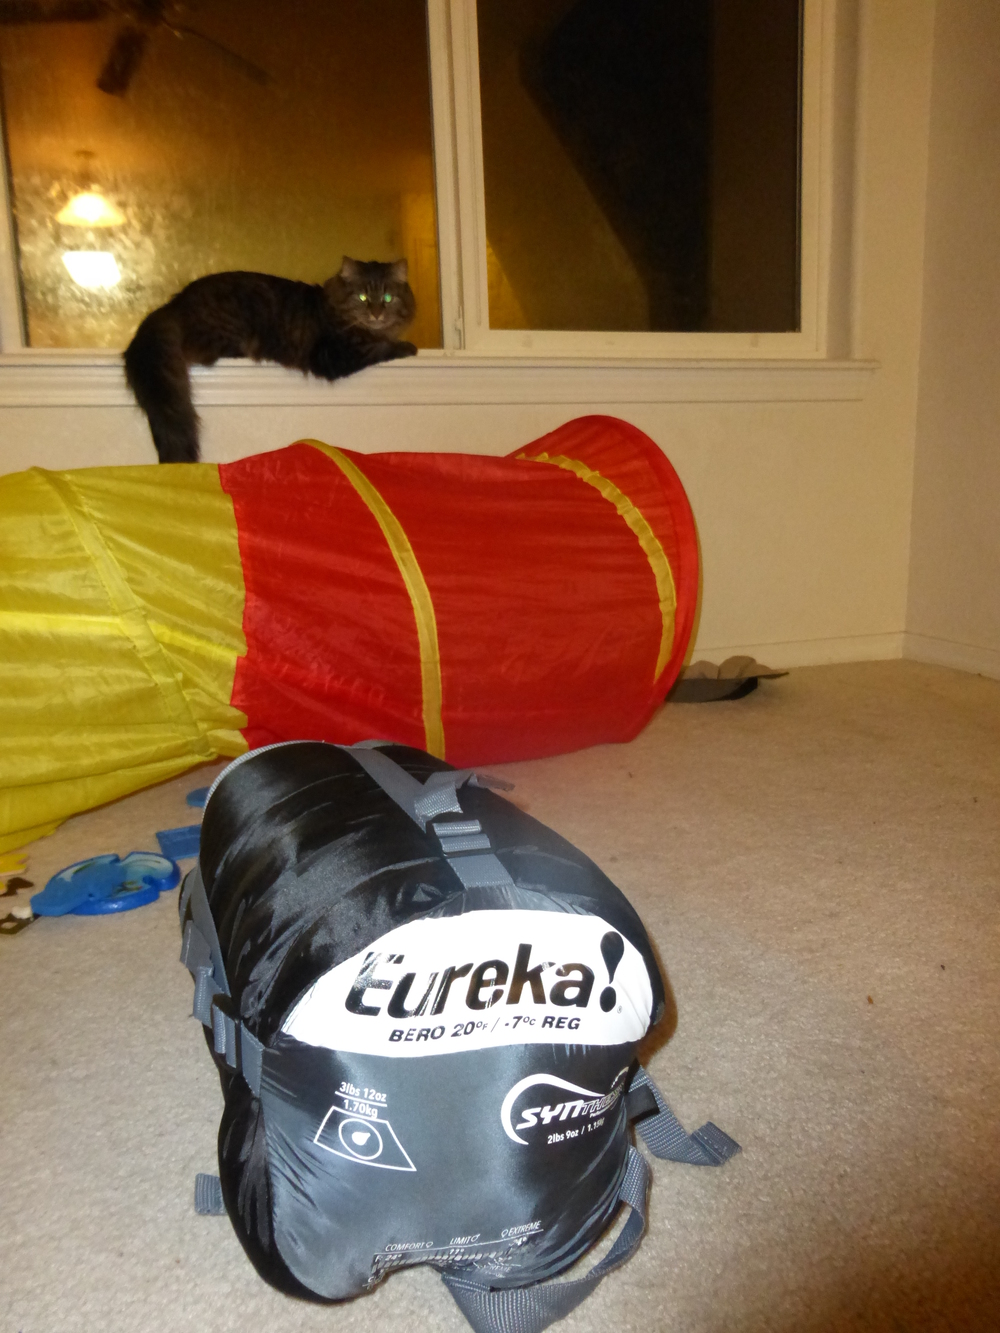 The Eureka Bero sleeping bag, cat not included